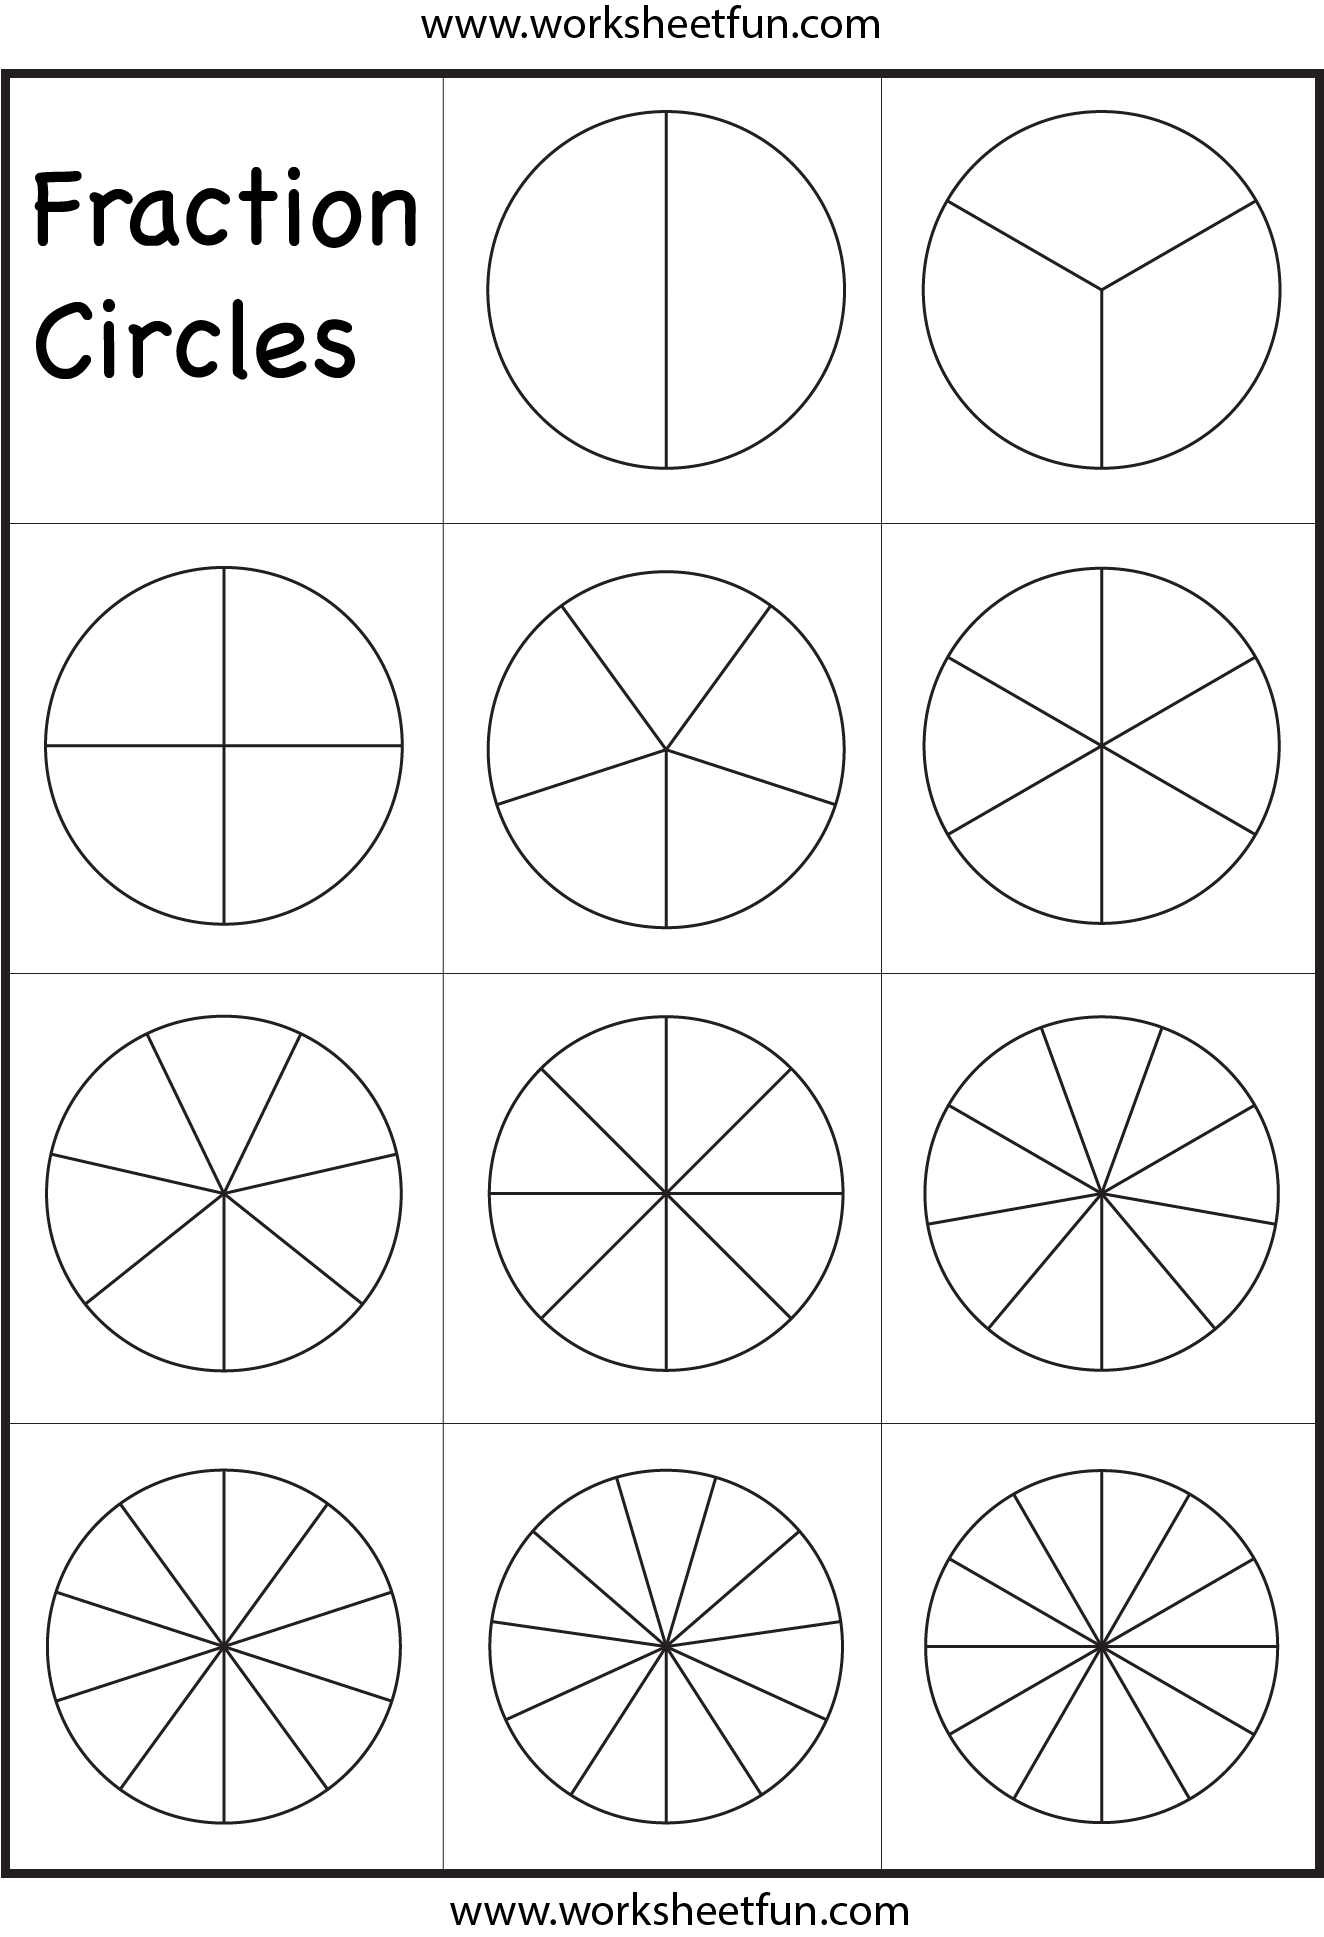 Fraction Circles Template Printable Fraction Circles 1 Worksheet Free Printable Worksheets